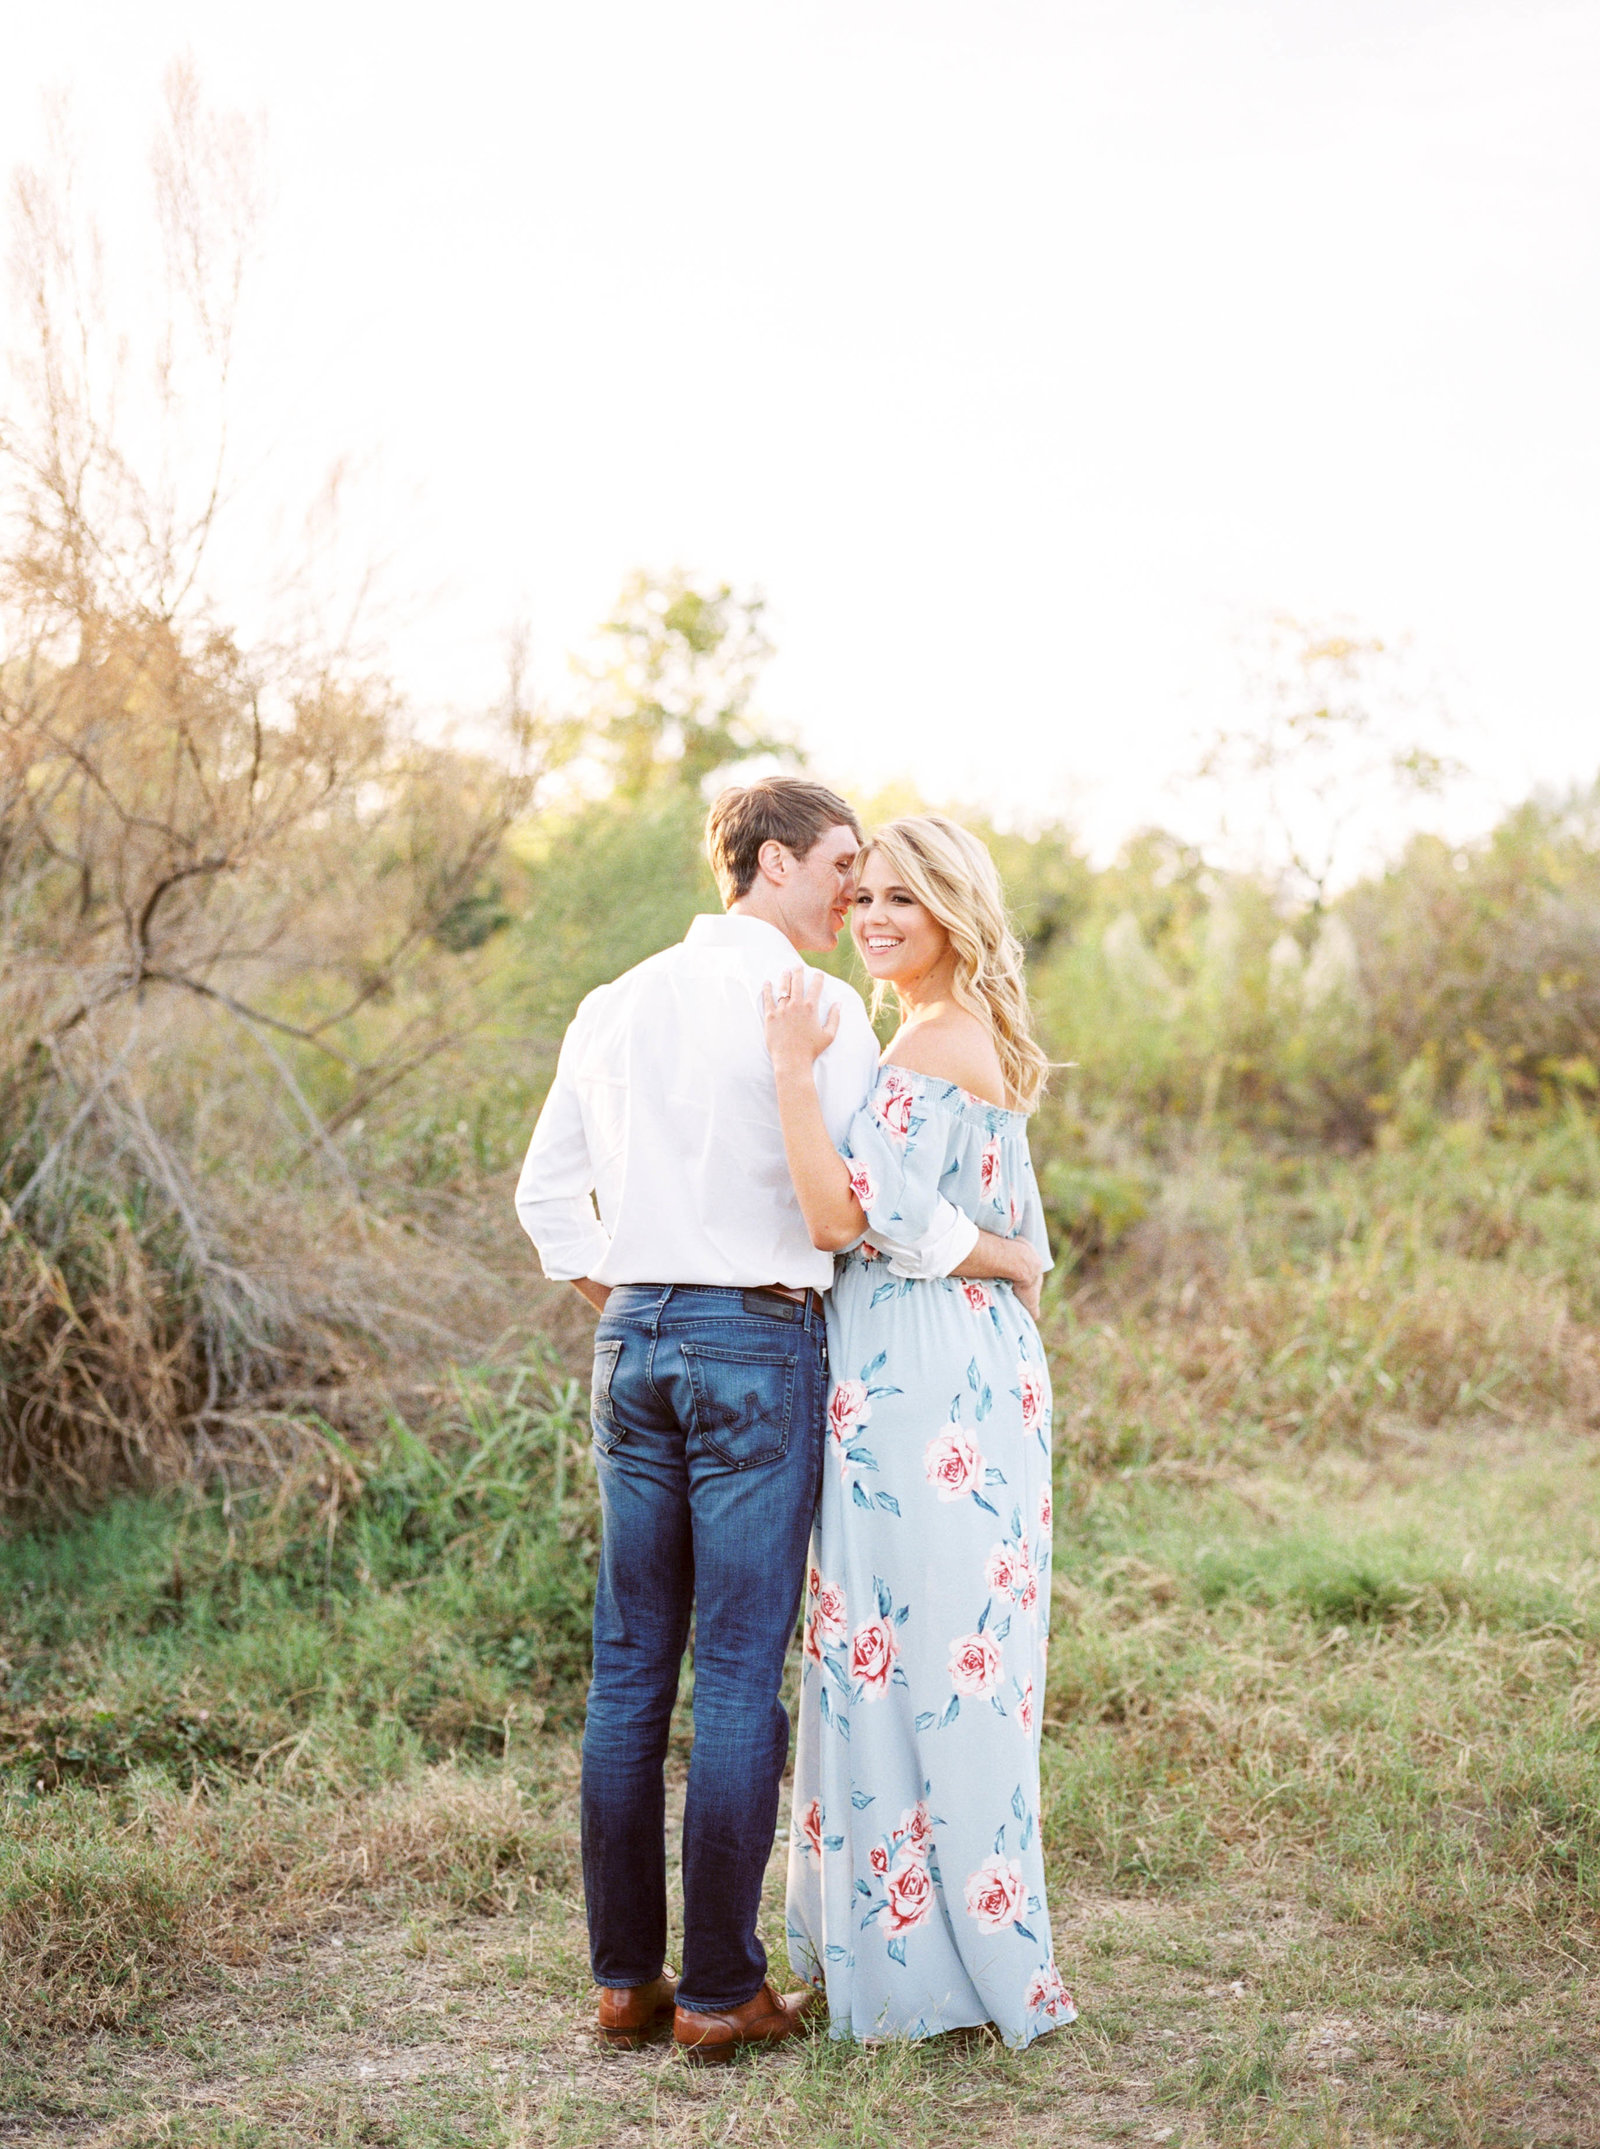 Dallas engagement photographer_Chelsea Q White-66